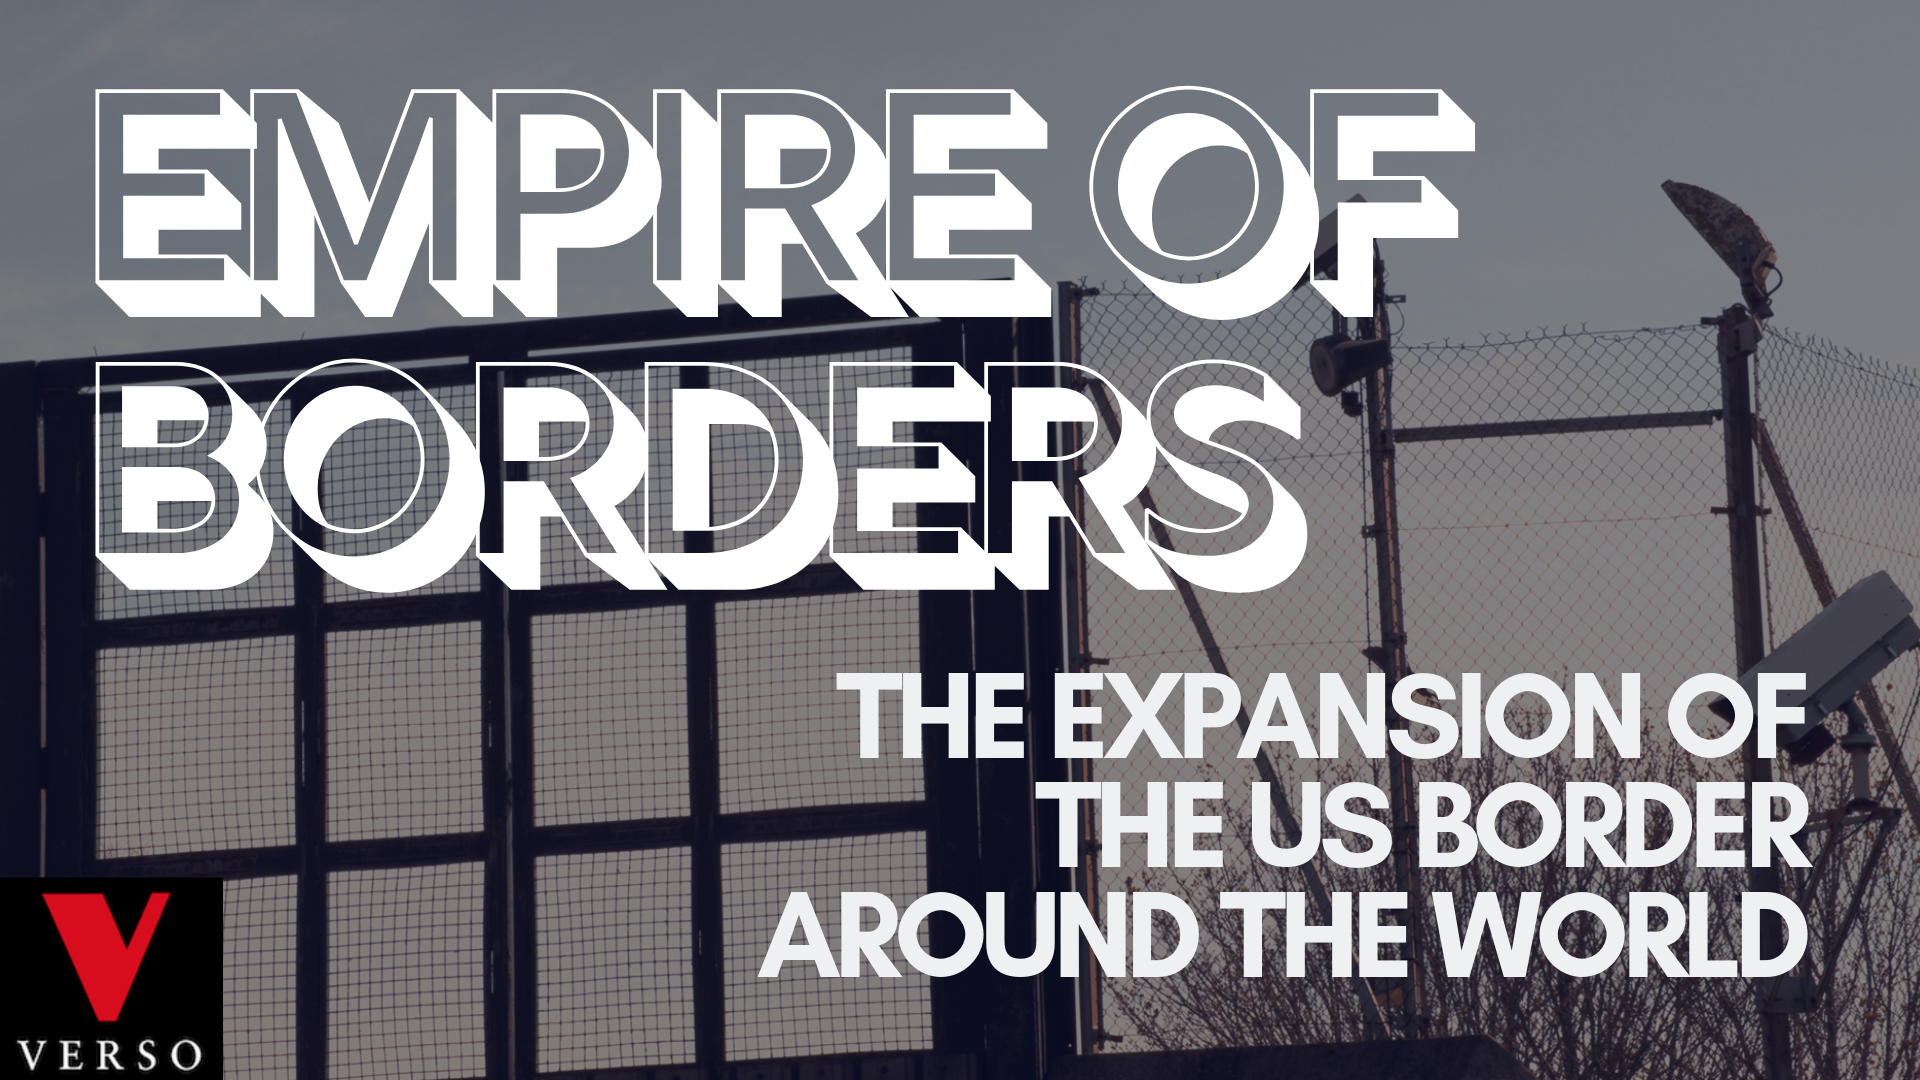 Empire_of_borders_slide-